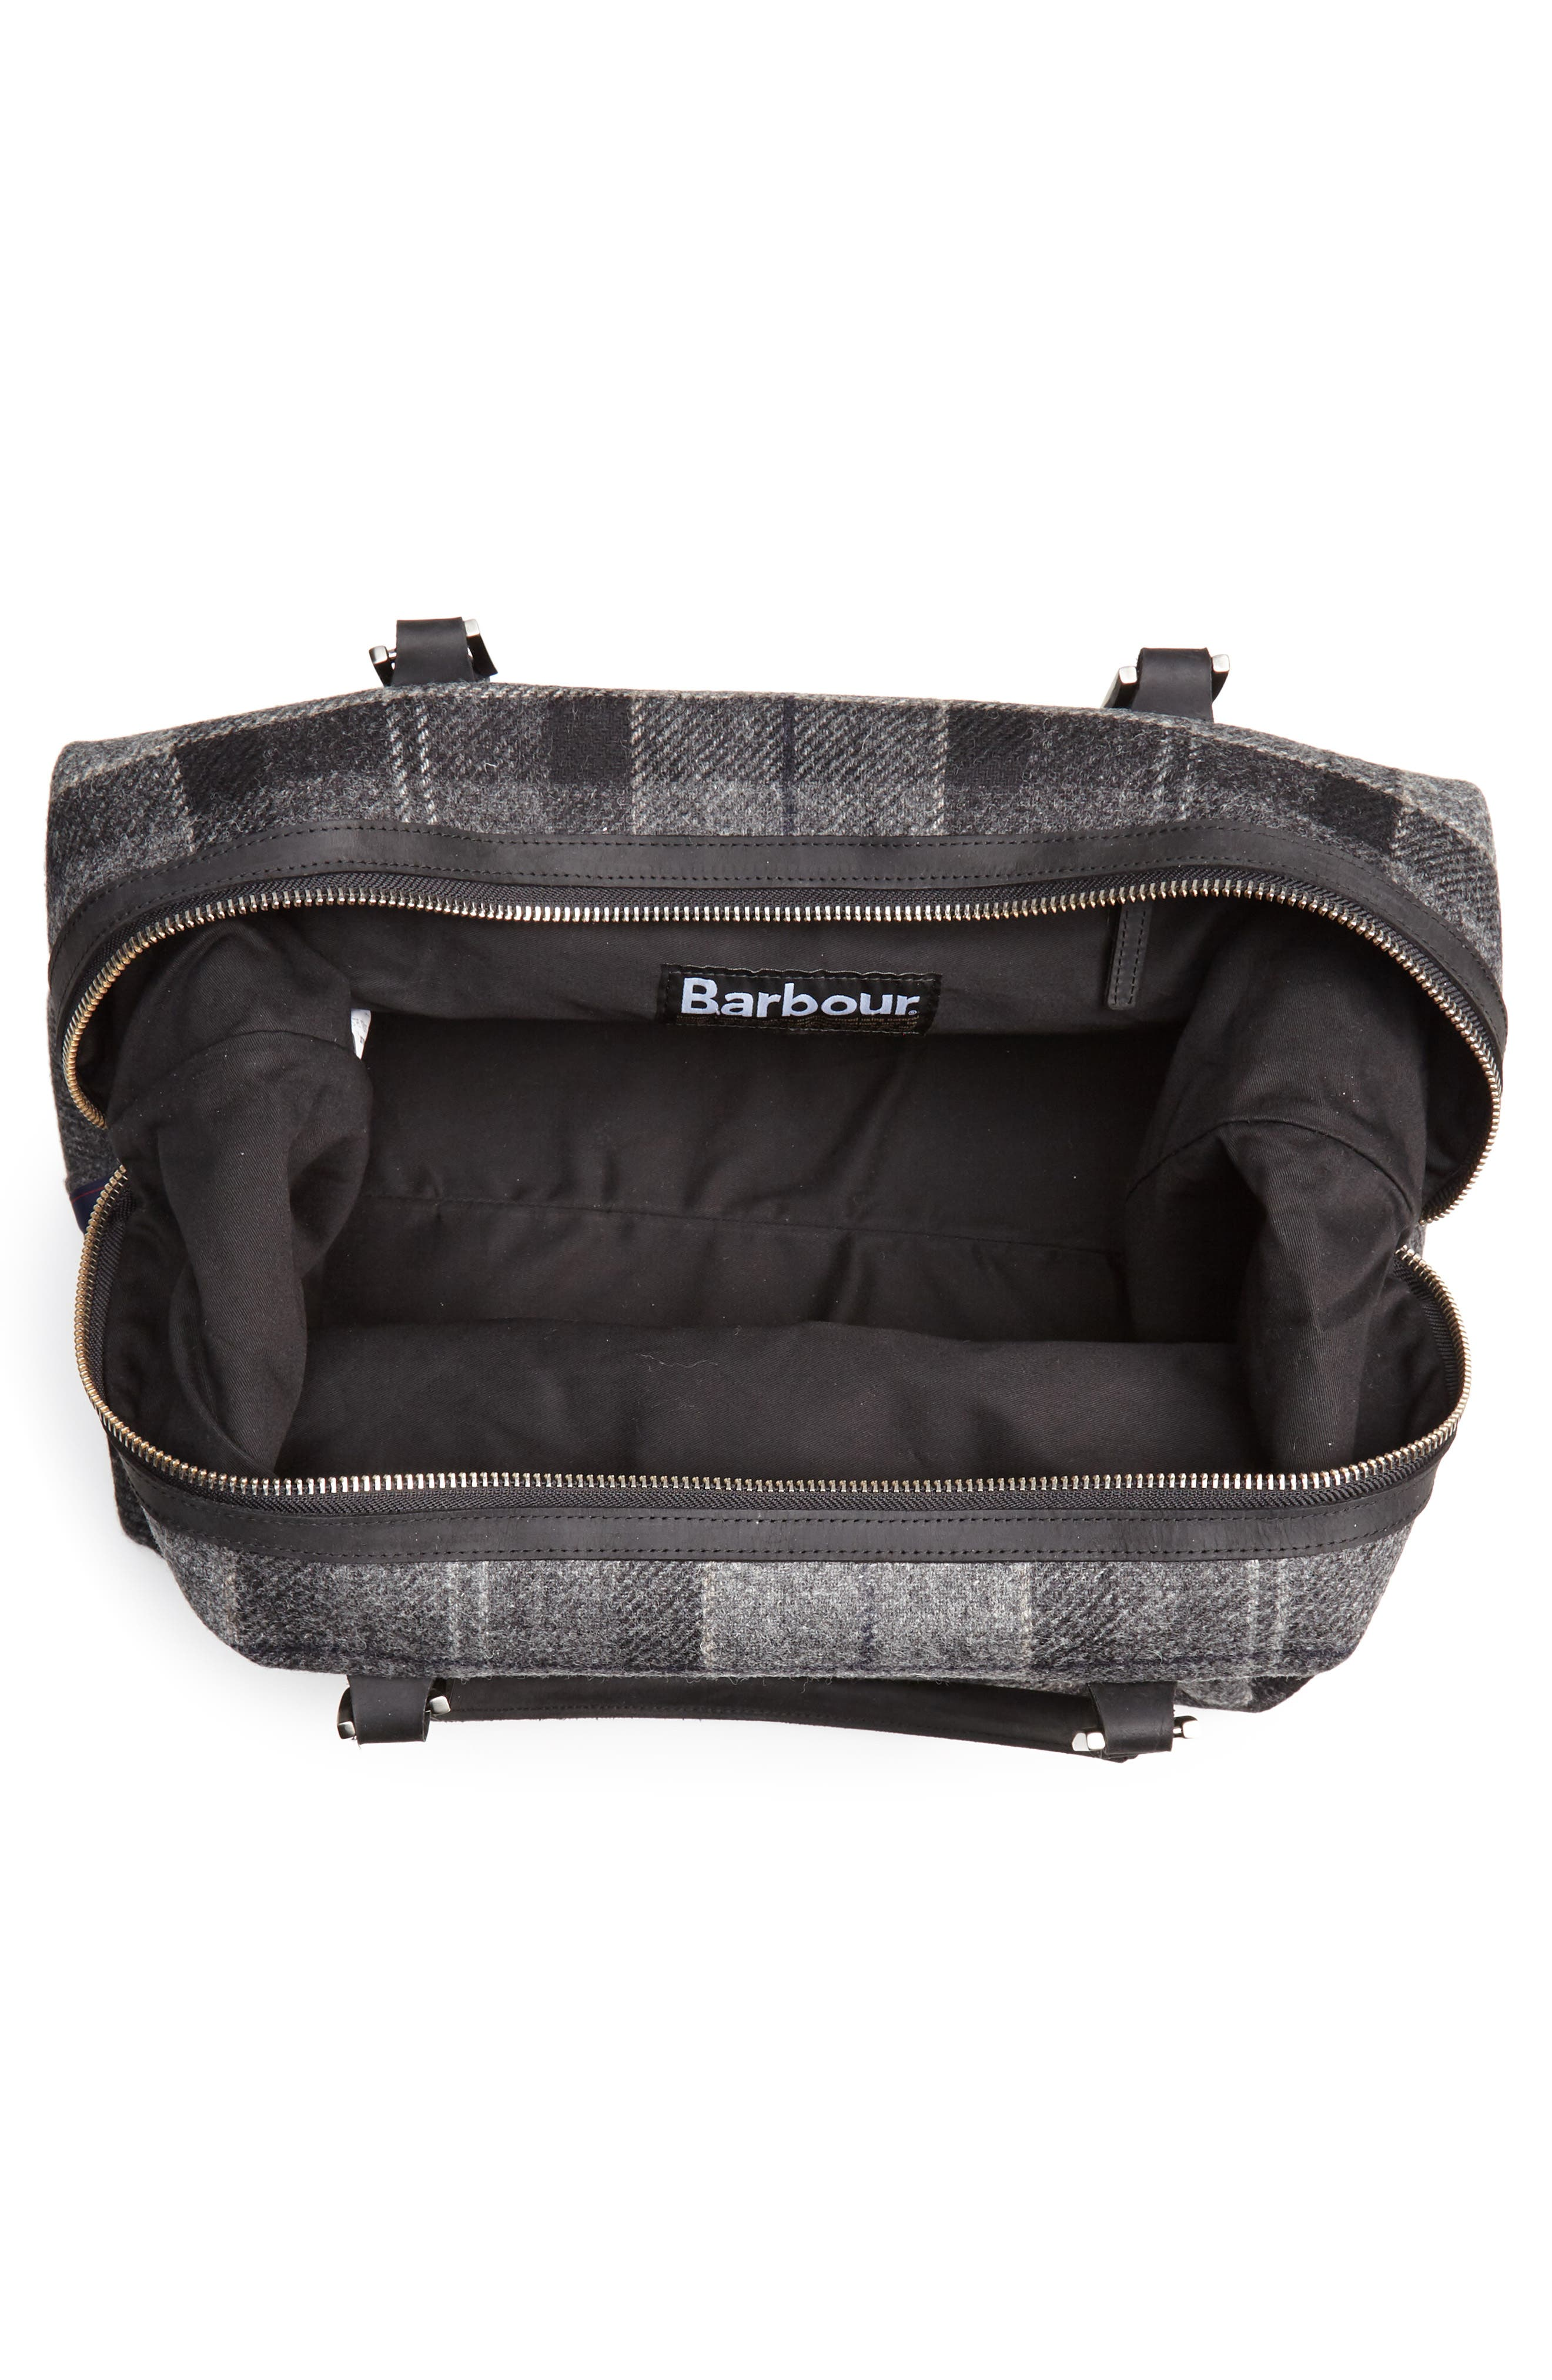 Shadow Duffel Bag,                             Alternate thumbnail 4, color,                             BLACK/ GREY TARTAN